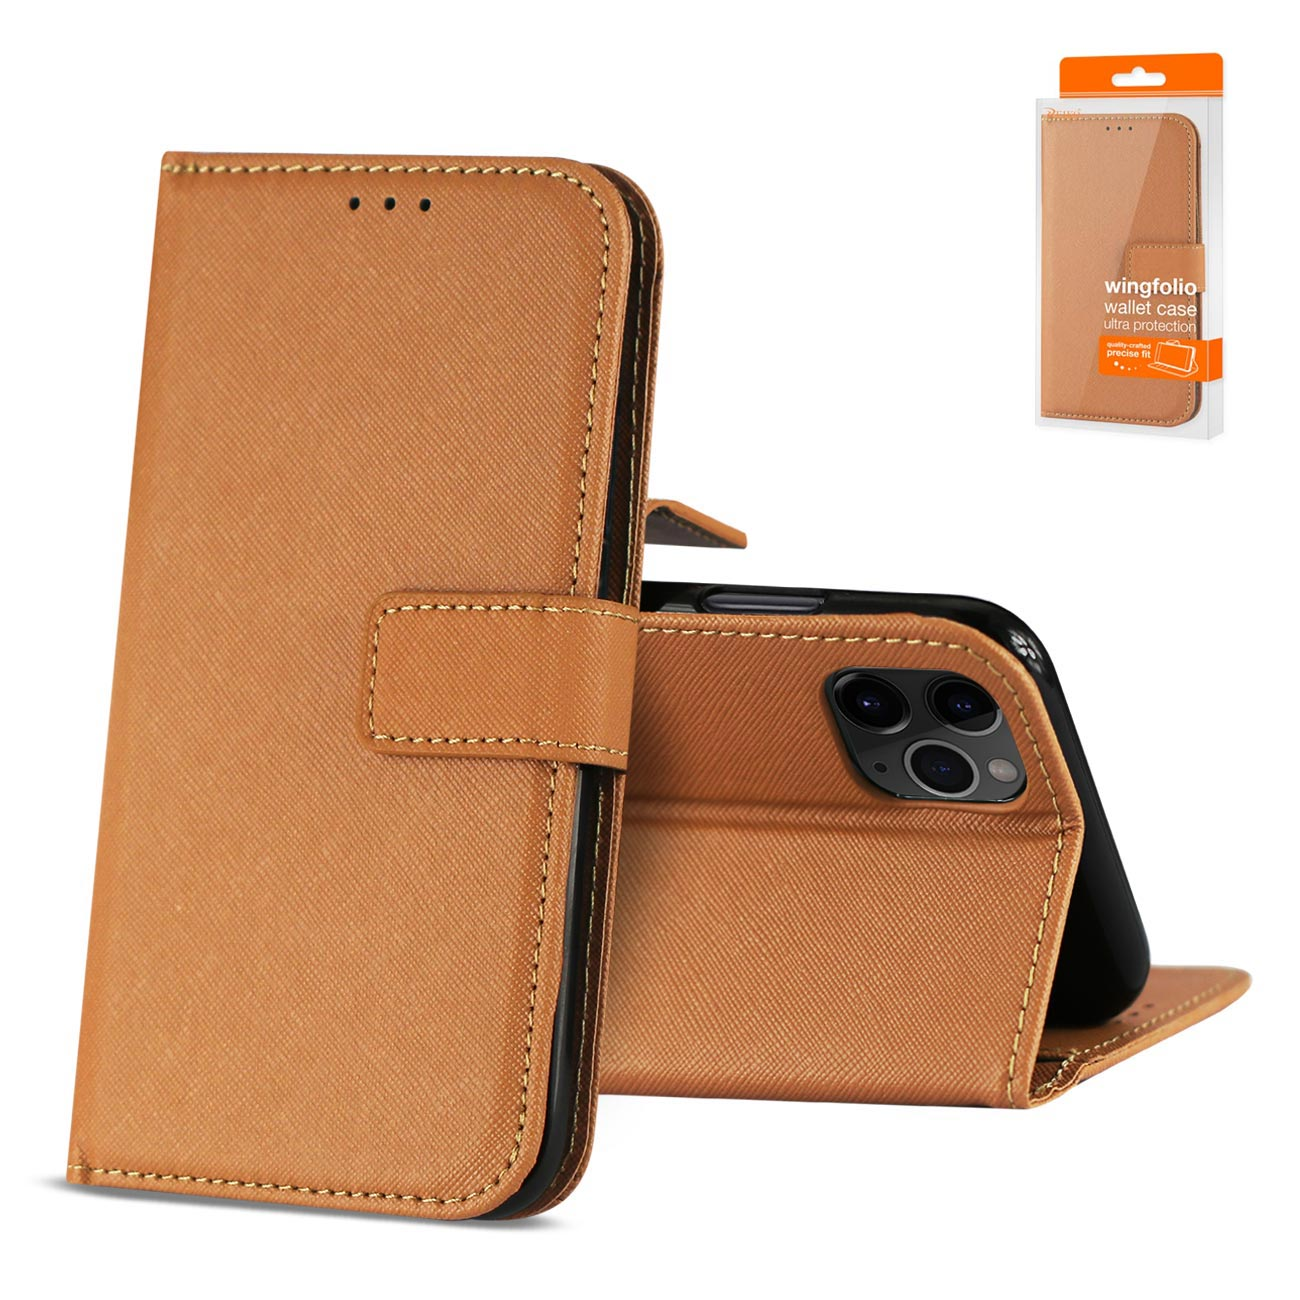 Reiko APPLE IPHONE 11 PRO 3-In-1 Wallet Case In BROWN